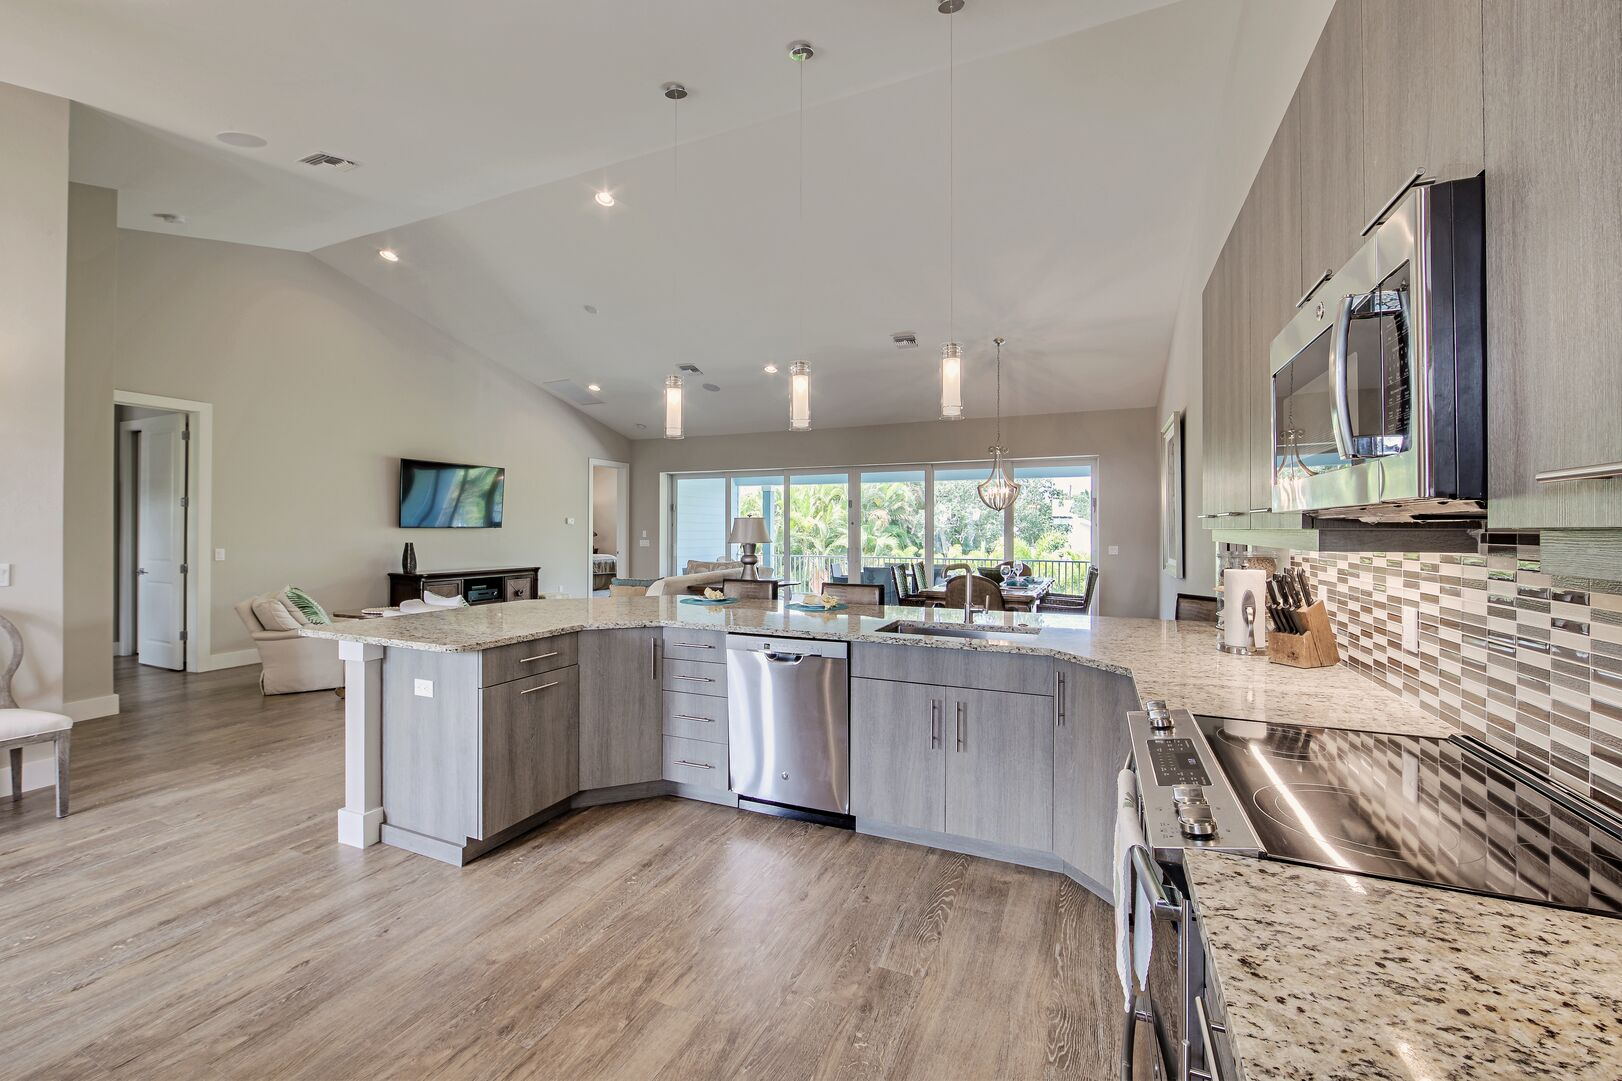 Kitchen area with island, oven and microwave